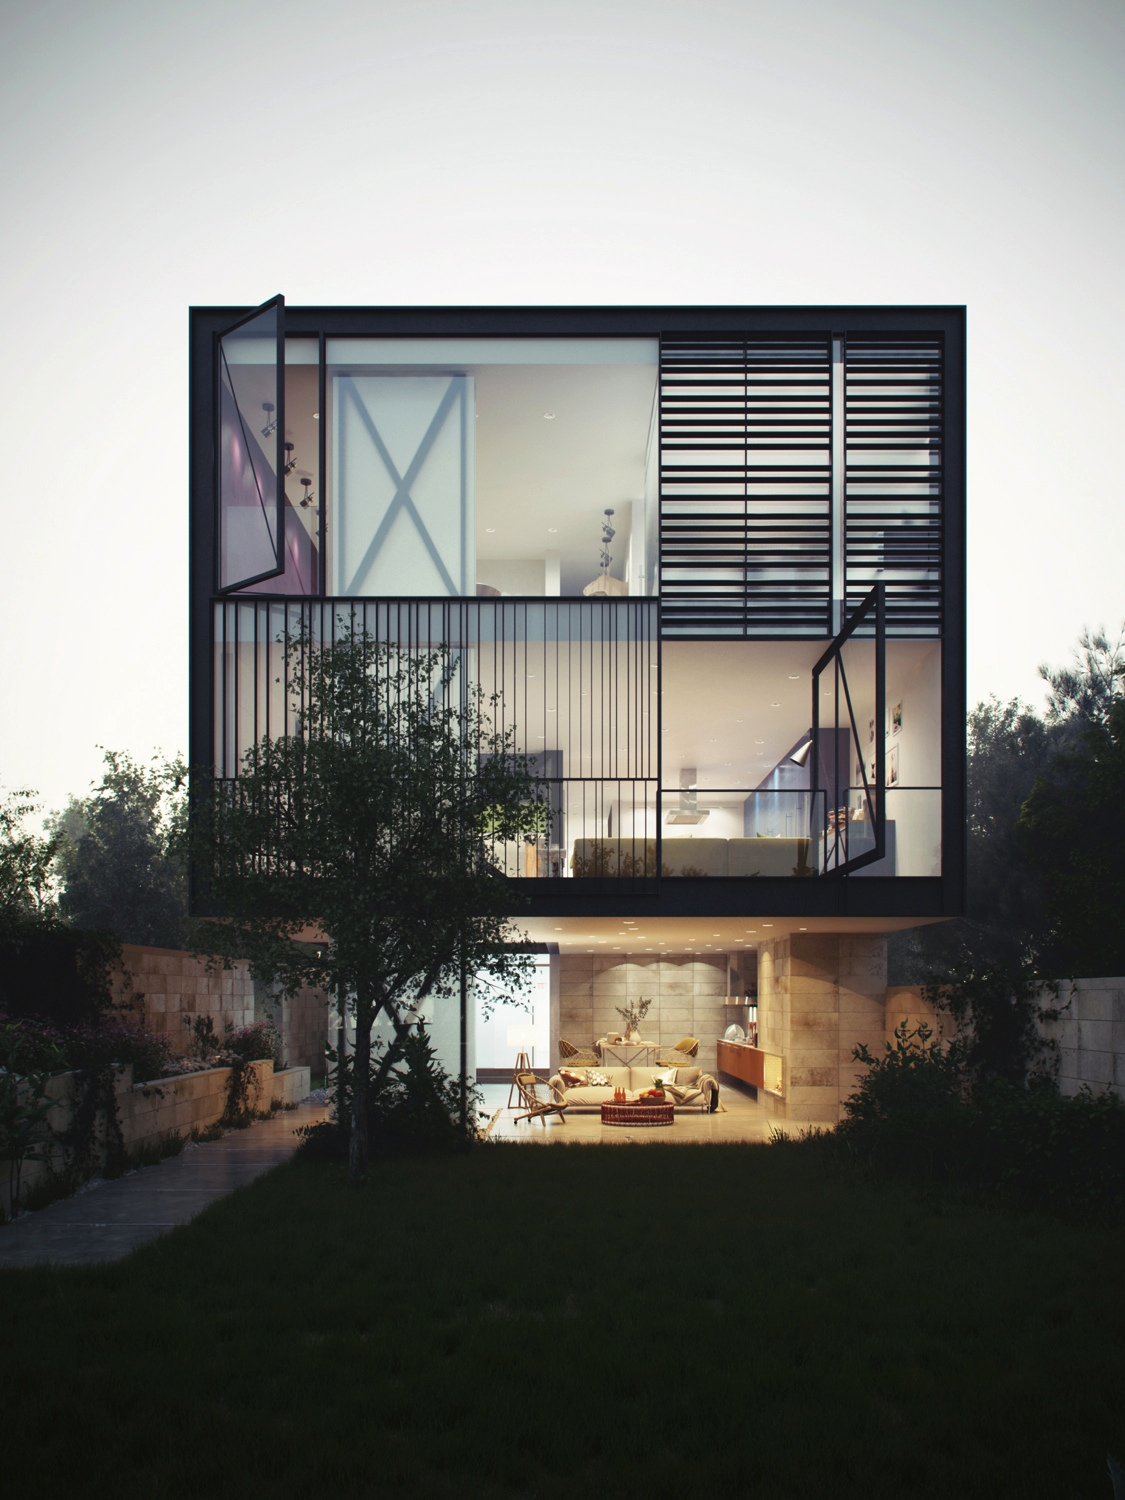 ^ rchitectural oncept of a Glass Box Home